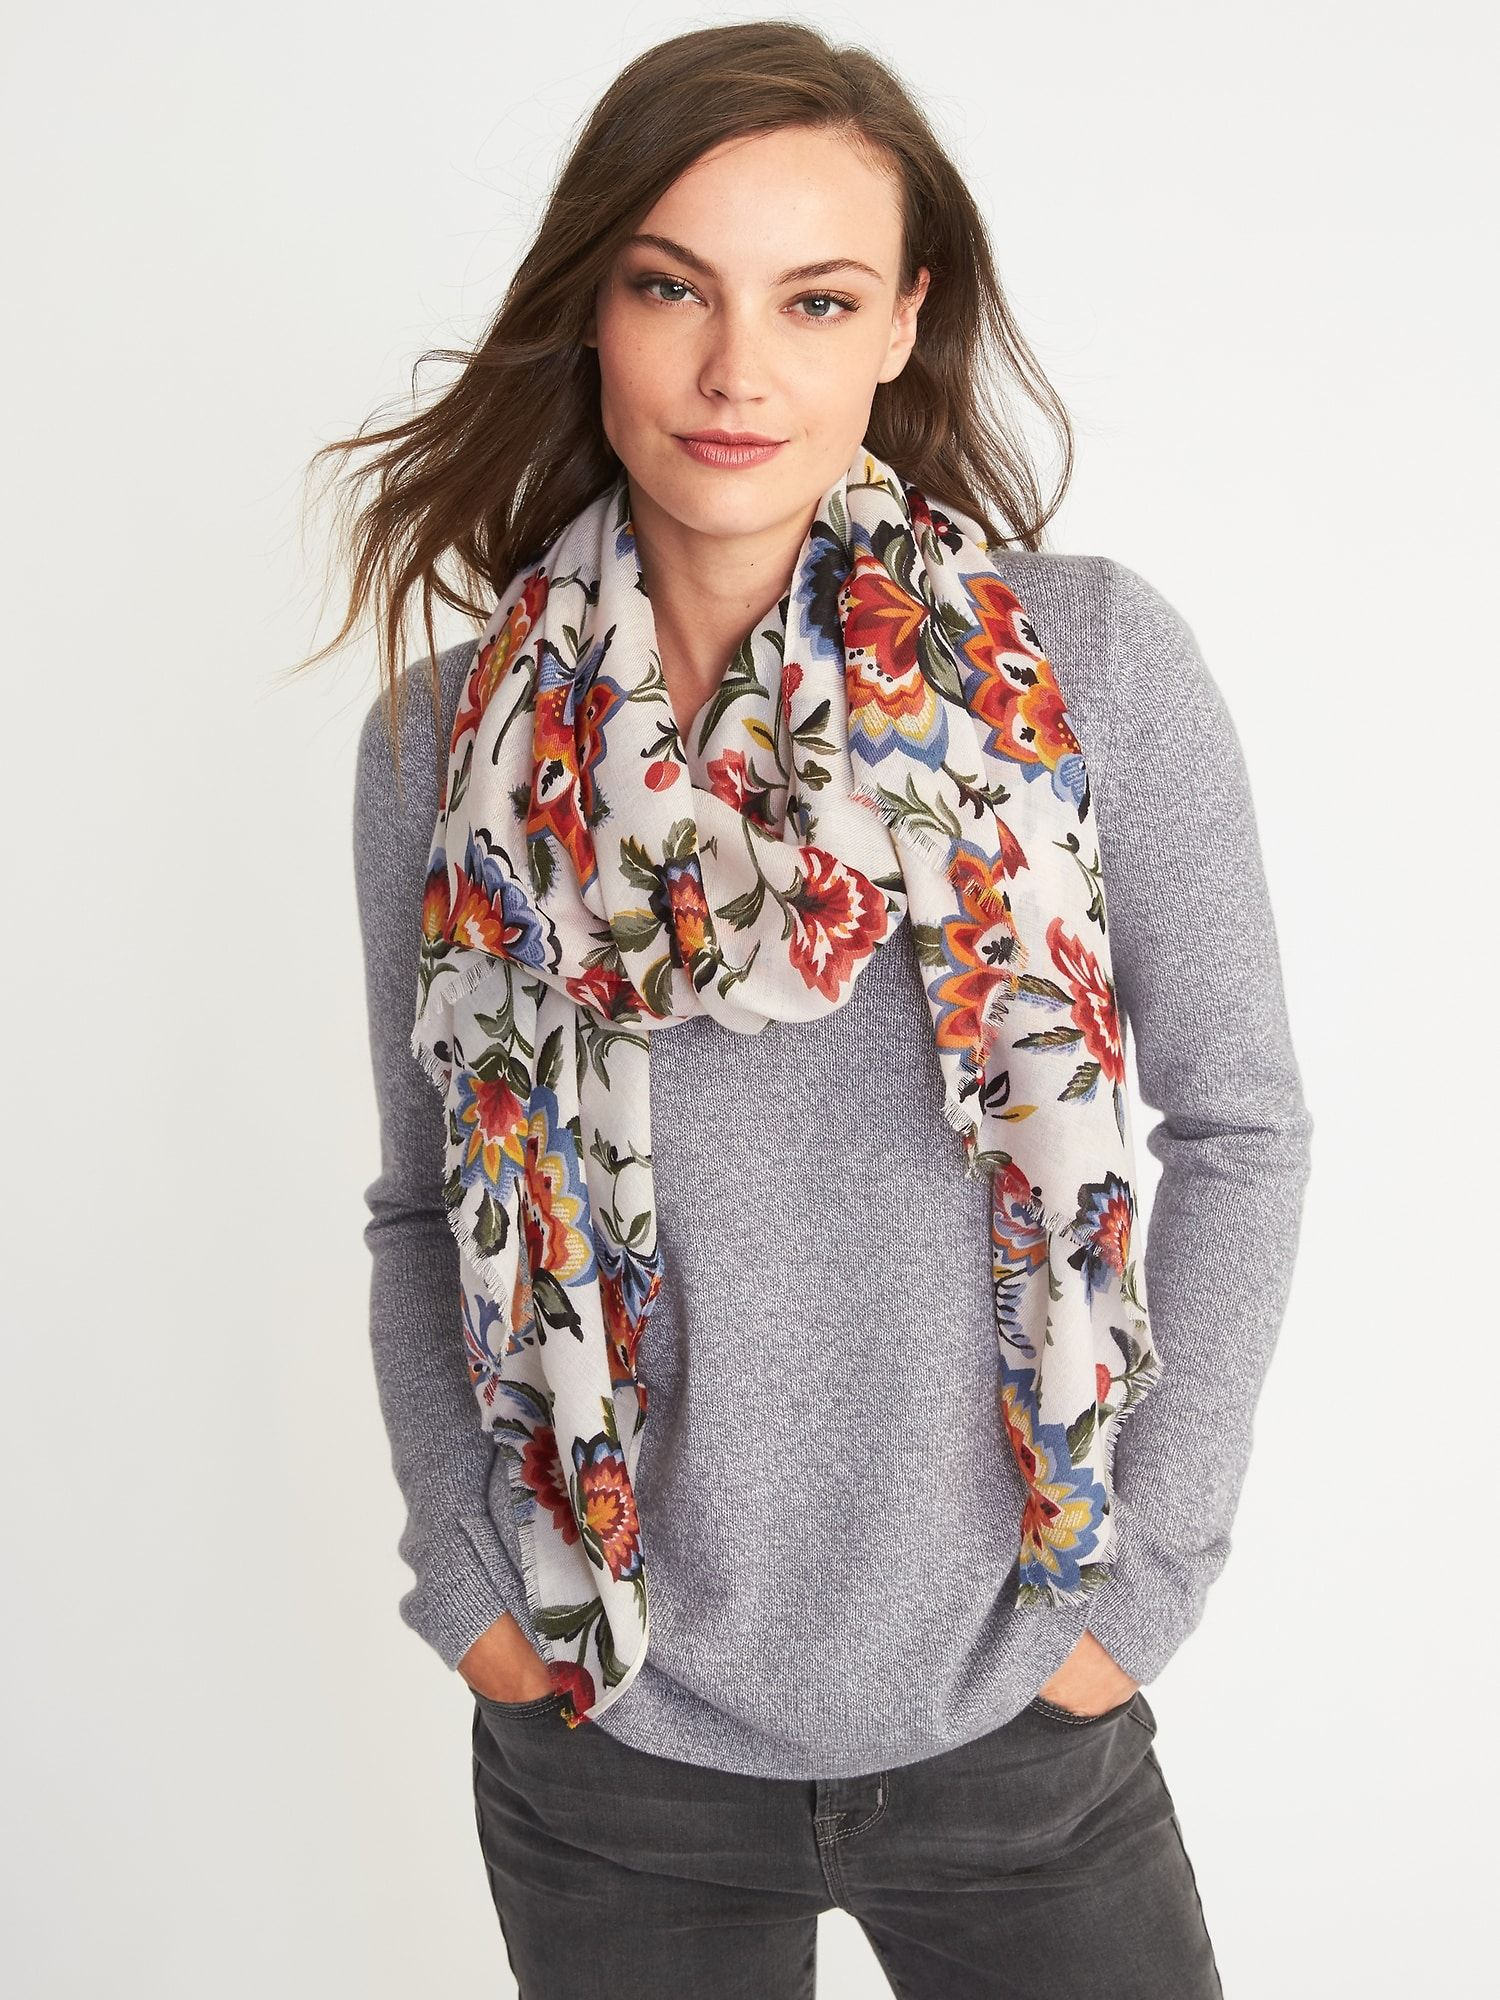 6f15fcf989d Old Navy Lightweight Printed Scarf for Women in Cream Floral | Wanna ...